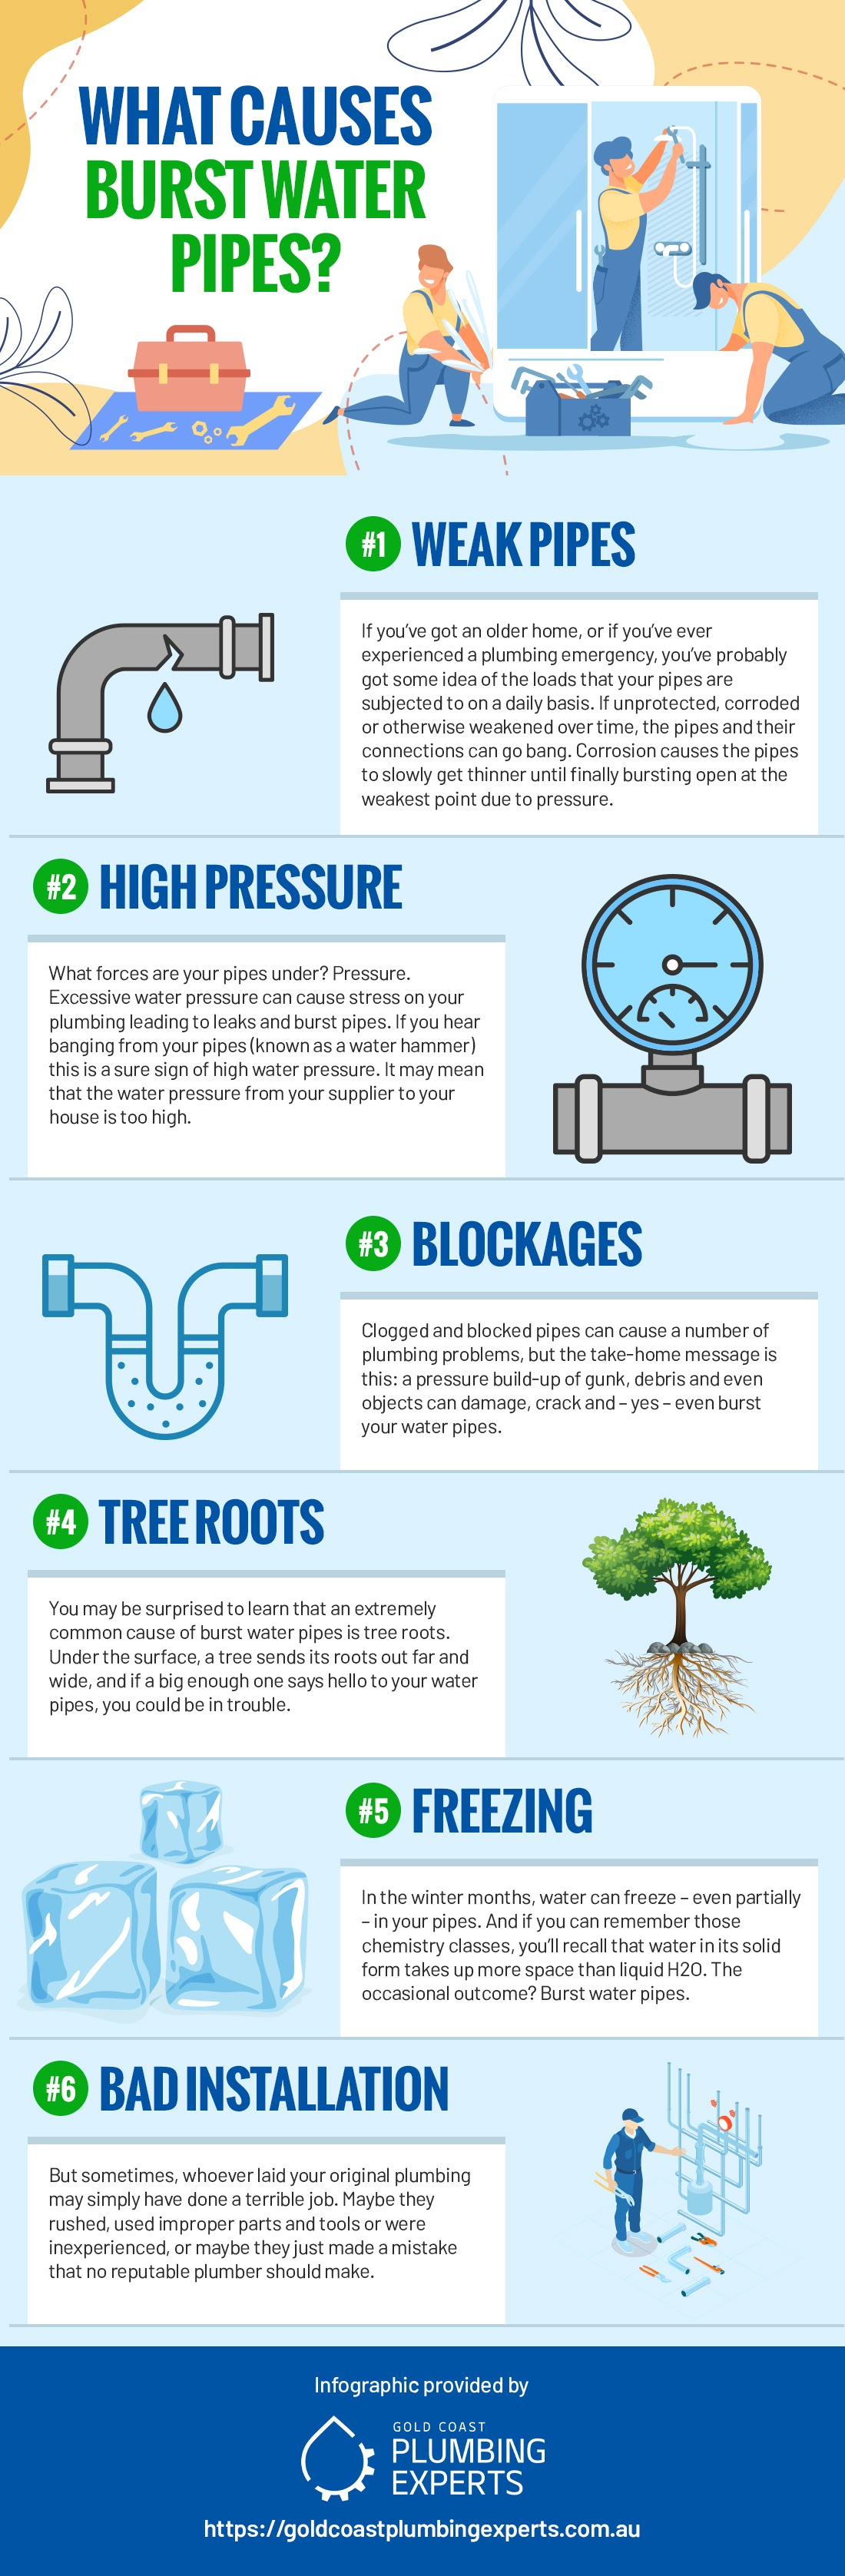 What Causes Burst Water Pipes? Here Are 6 Common Culprits #infographic